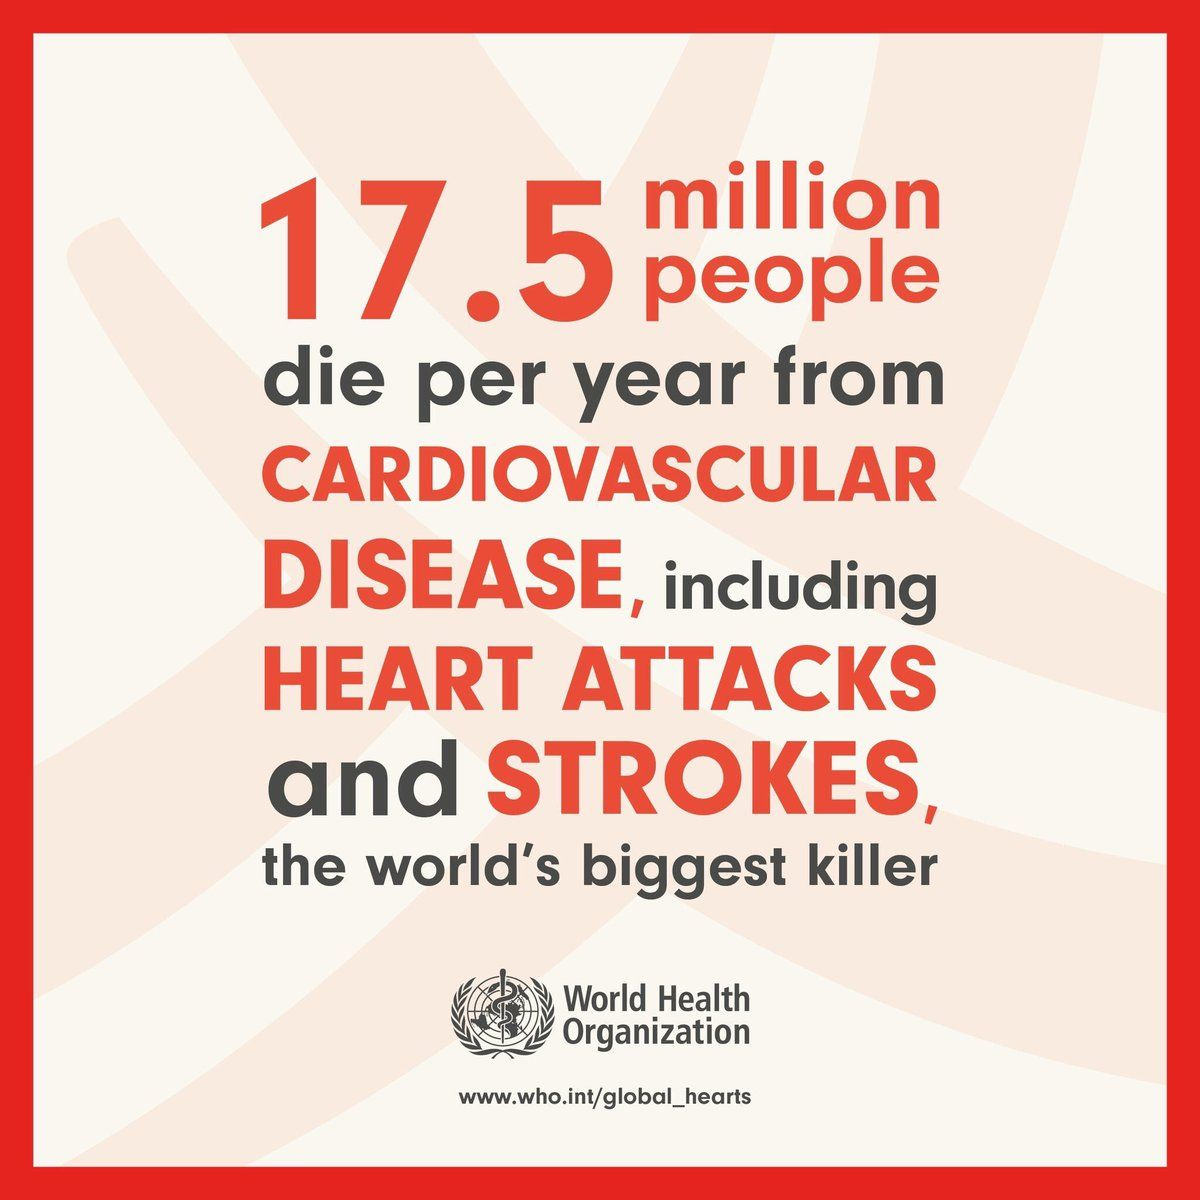 test Twitter Media - Premature deaths from heart & lung diseases, cancer & diabetes impact all countries #beatNCDs https://t.co/YvDIOsrkAU RT @WHO https://t.co/kC1jOe2YWt